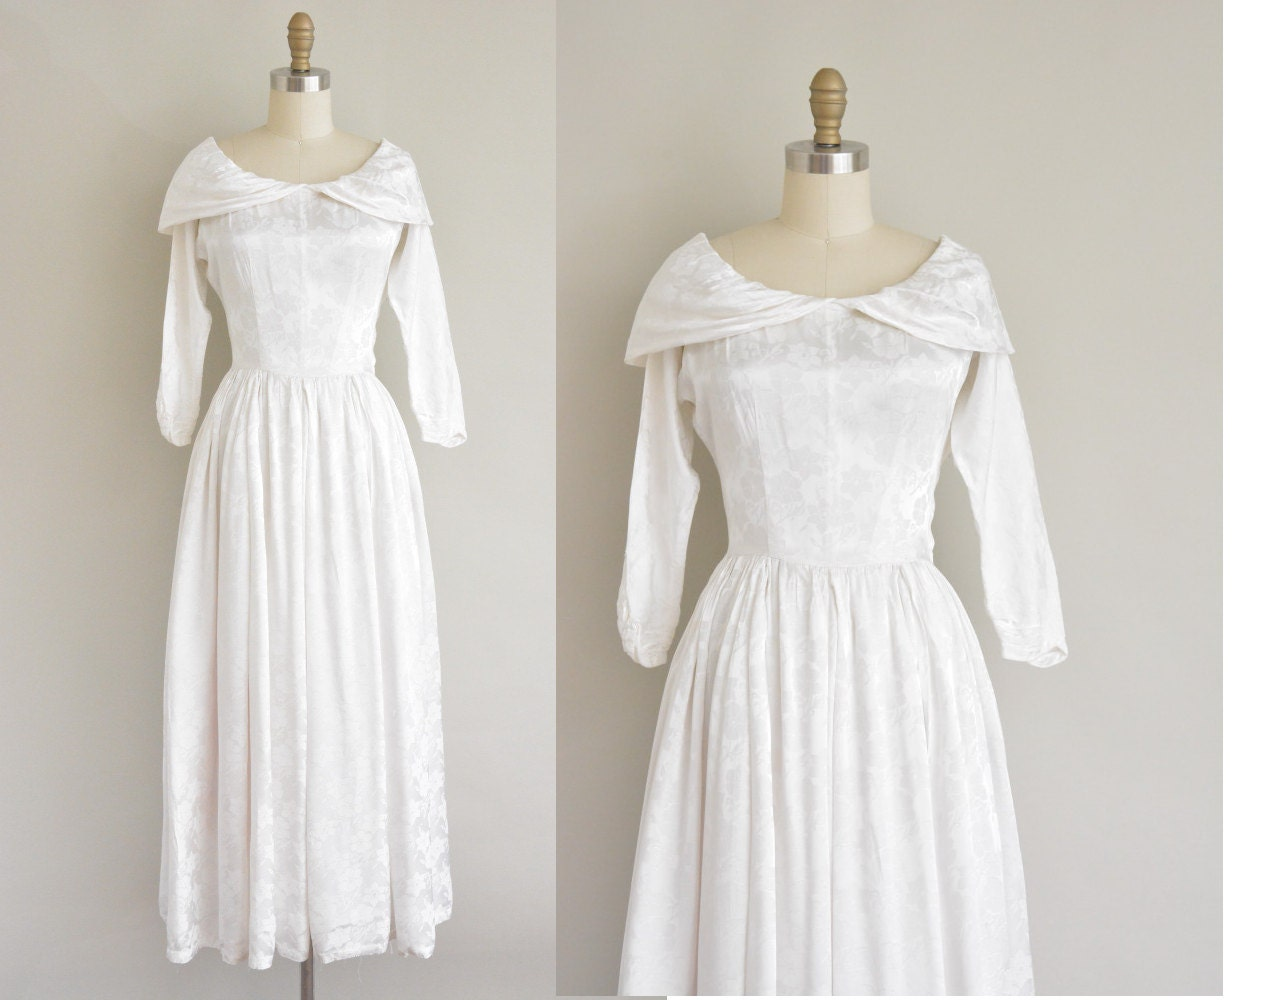 1940s Wedding Dress / Satin Floral Print Dress / 40s Wedding